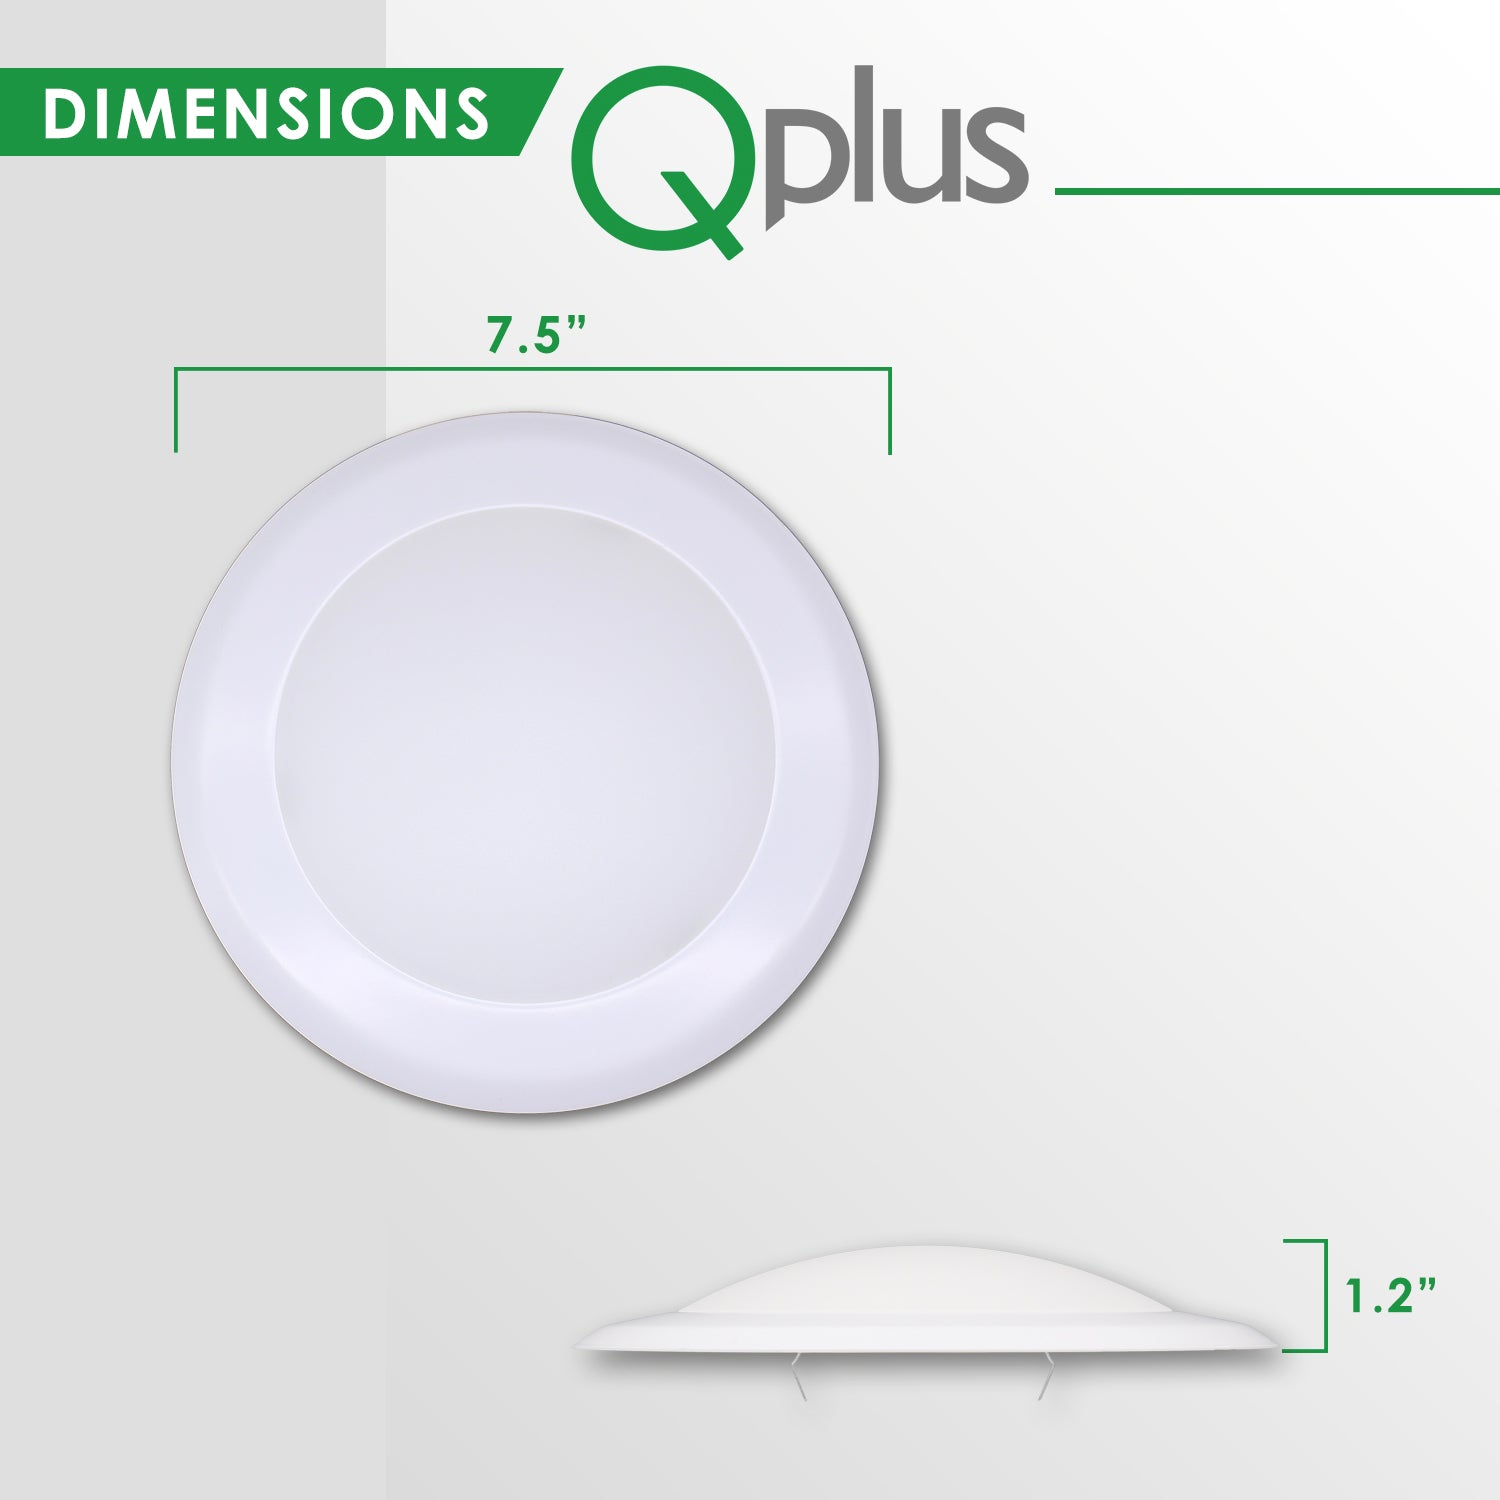 QPlus 7.5 Inch Round LED Dimmable Ceiling Disk Light 15W/1050 Lumens 5000K